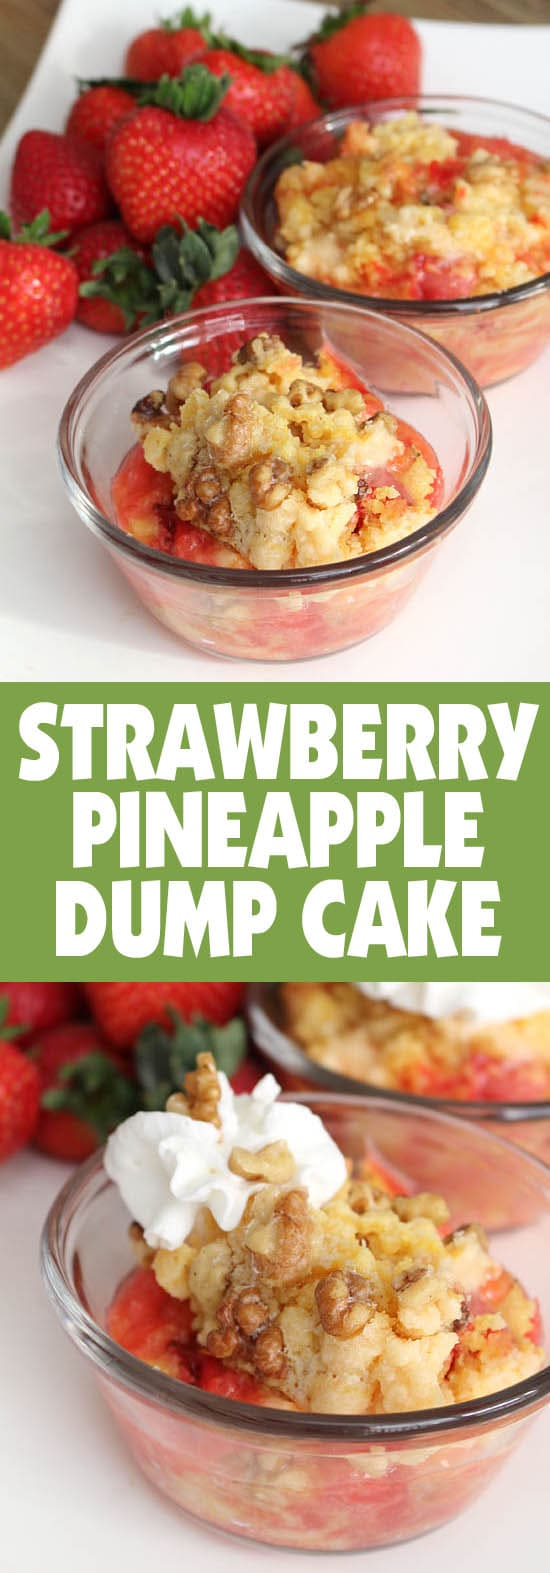 strawberry pineapple dump cake recipe